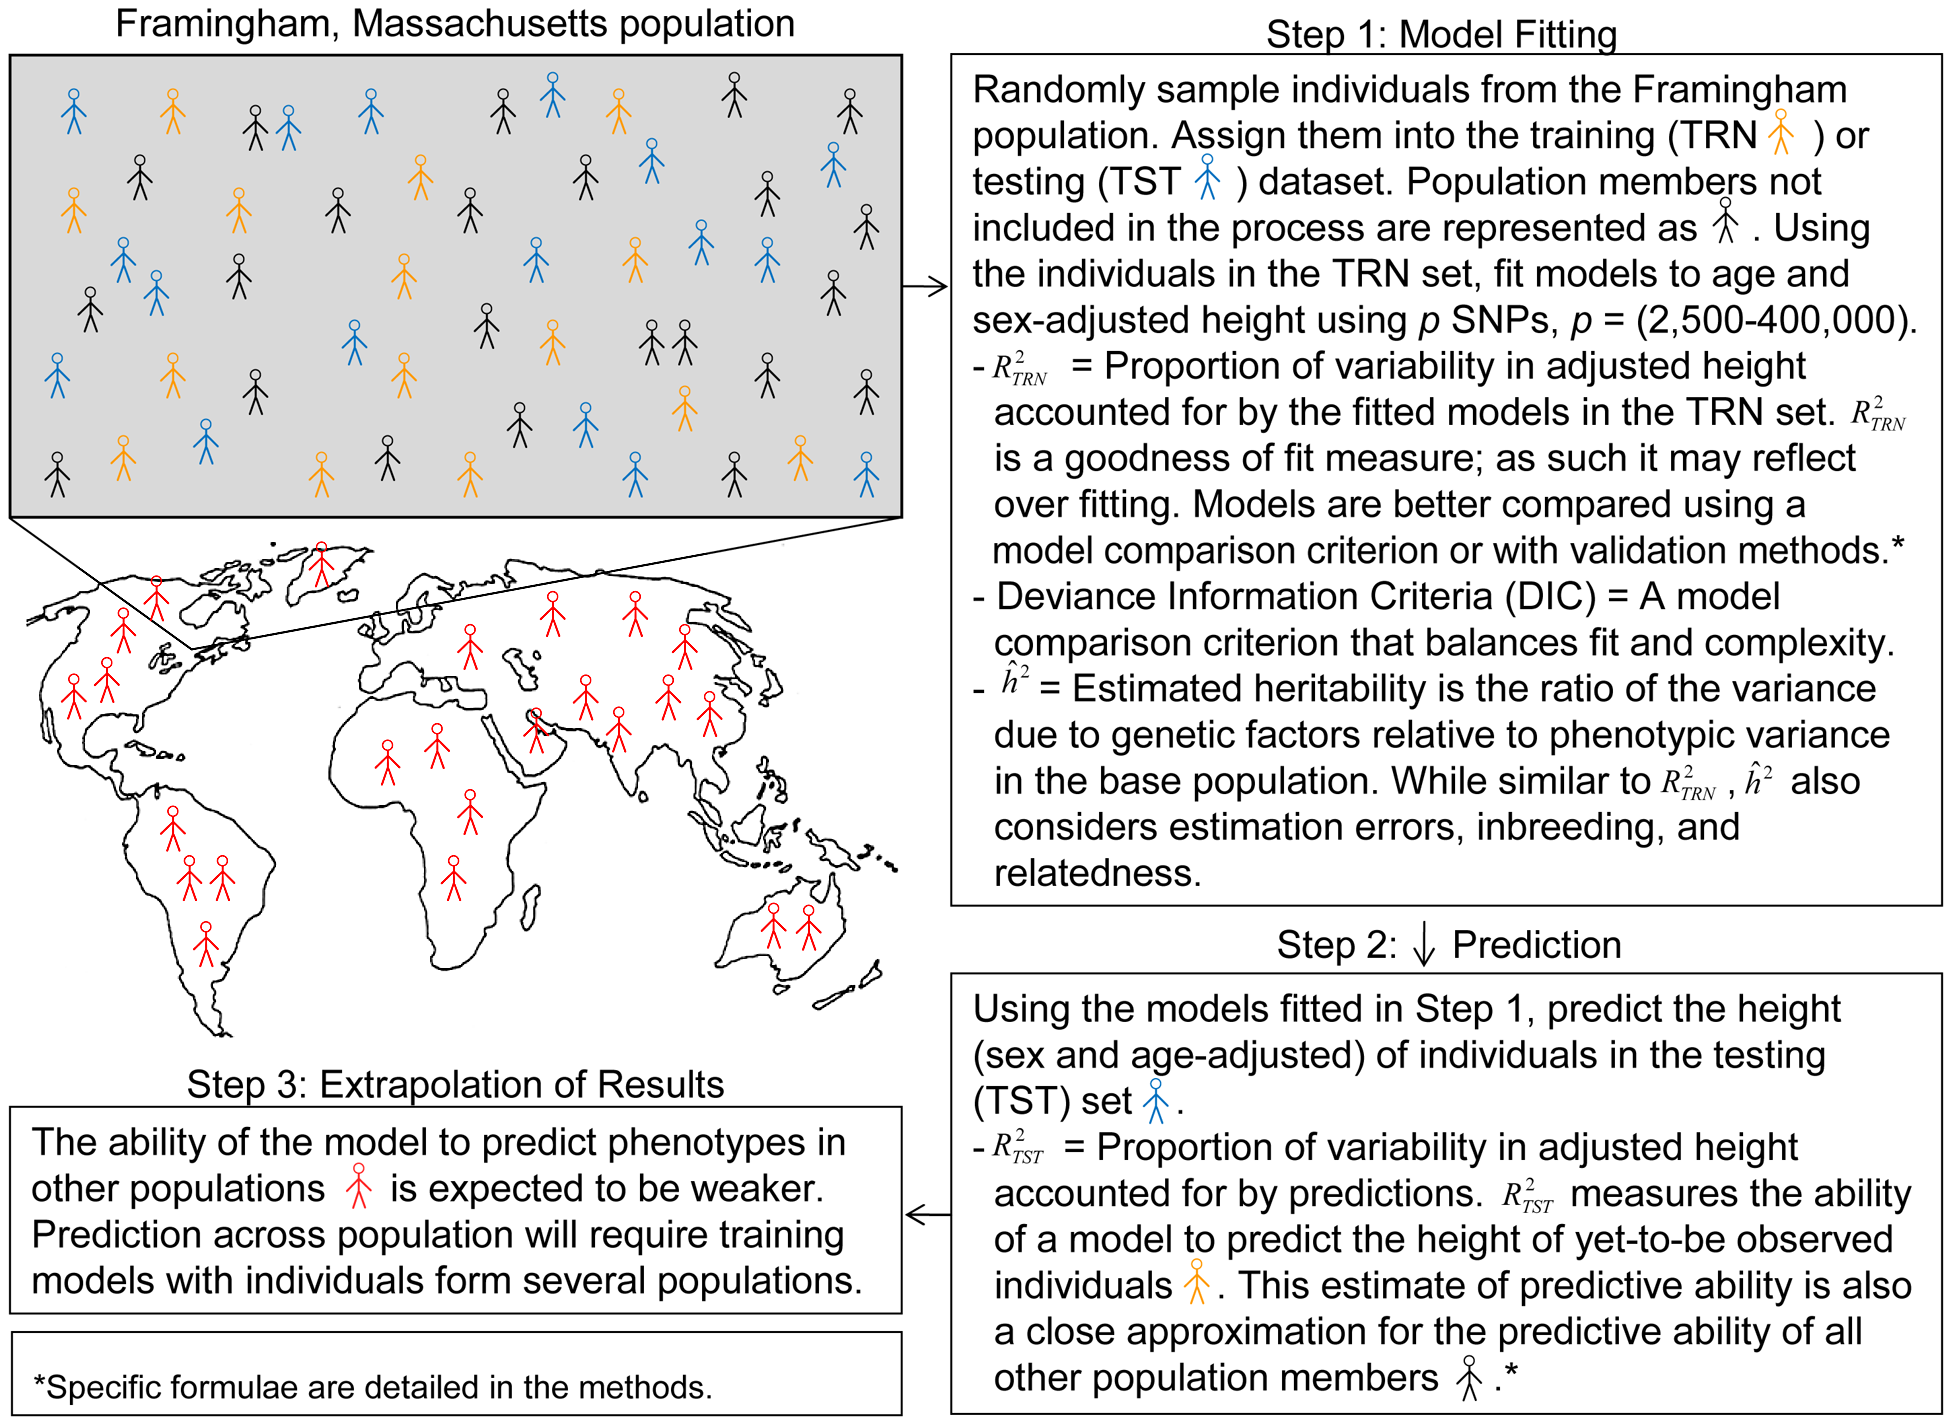 A simplified representation of assessment of goodness of fit in a training dataset and of predictive ability across a population: an example with the Framingham population.